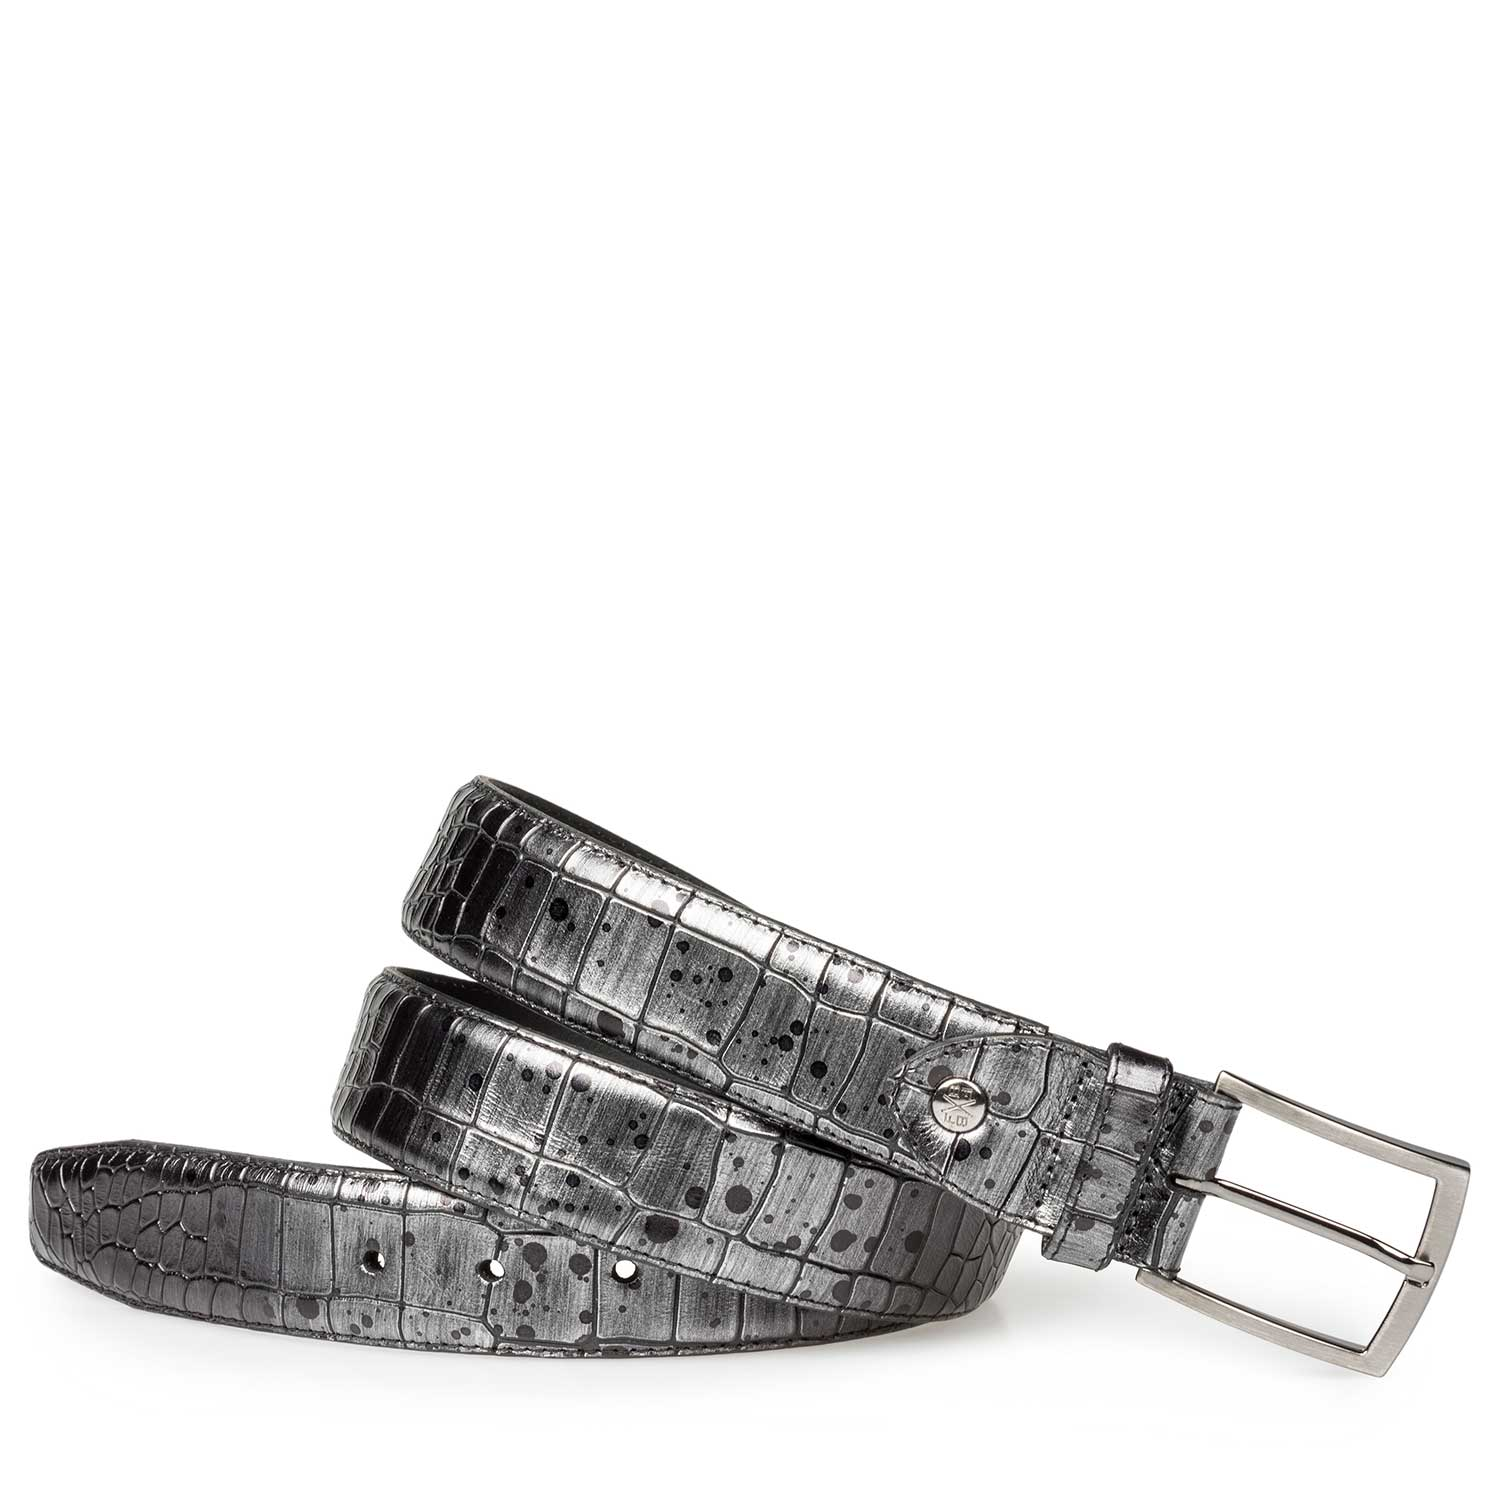 75190/10 - Grey leather belt with croco print